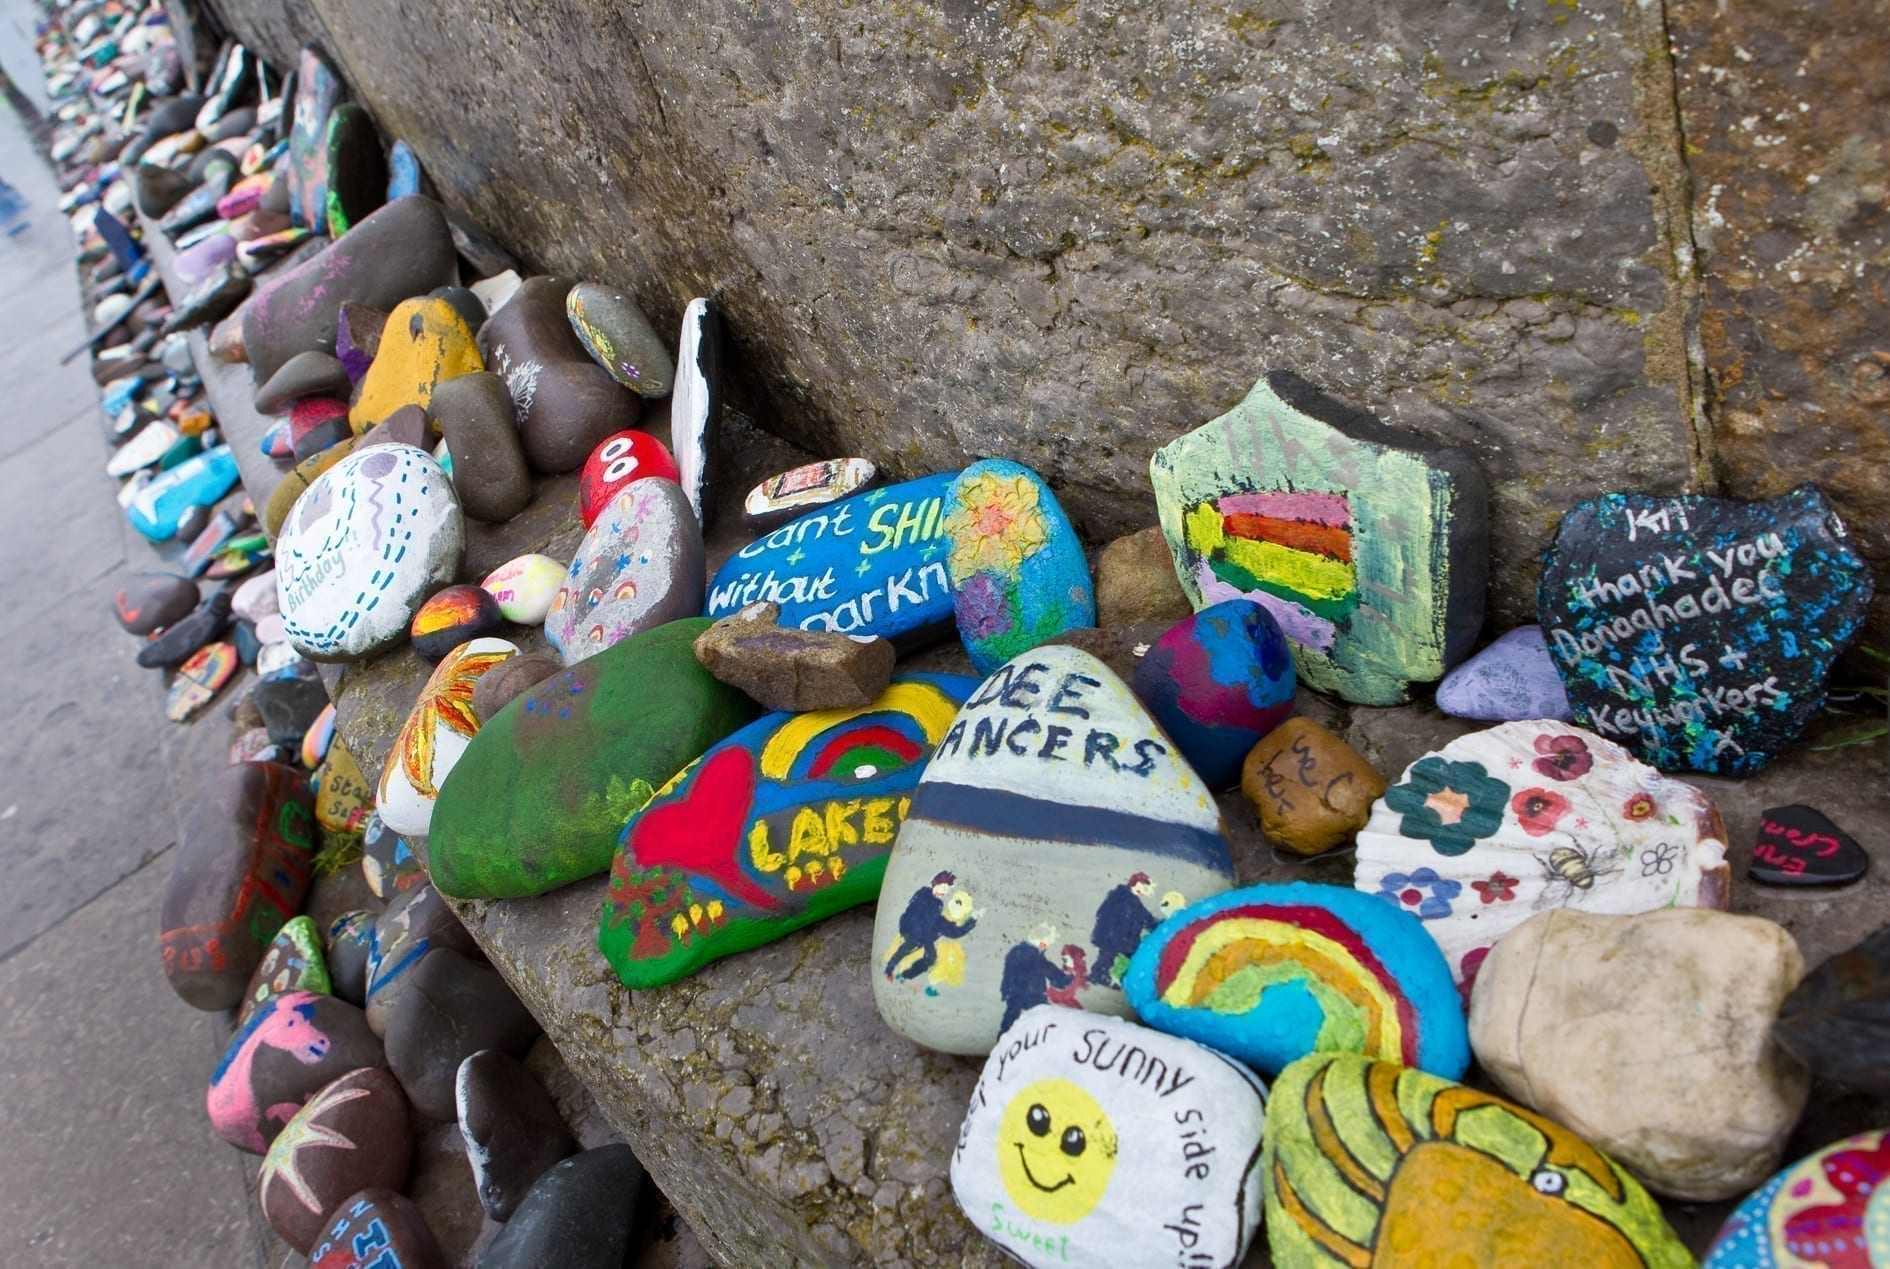 Residents to be asked for views on stones